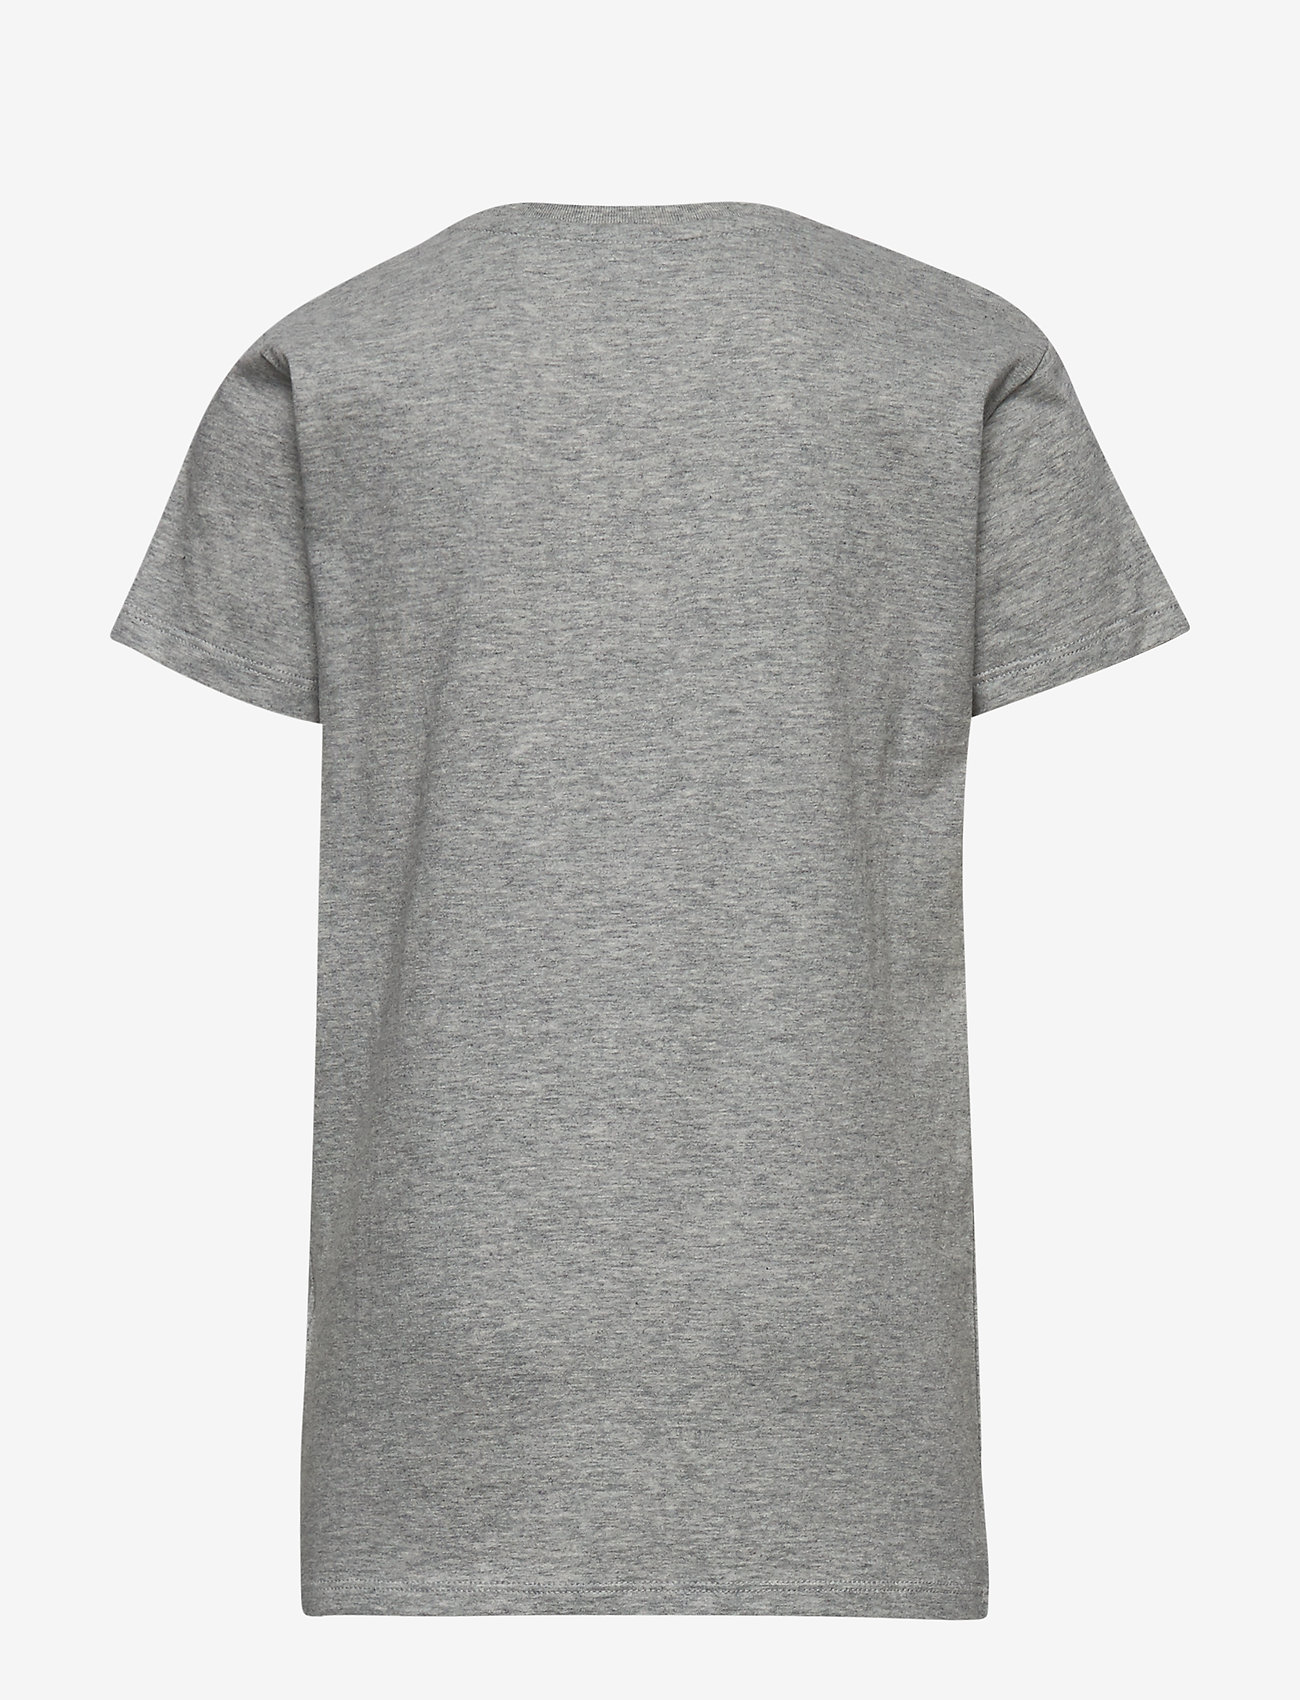 GANT - GANT SHIELD SS T-SHIRT - kurzärmelige - light grey melange - 1